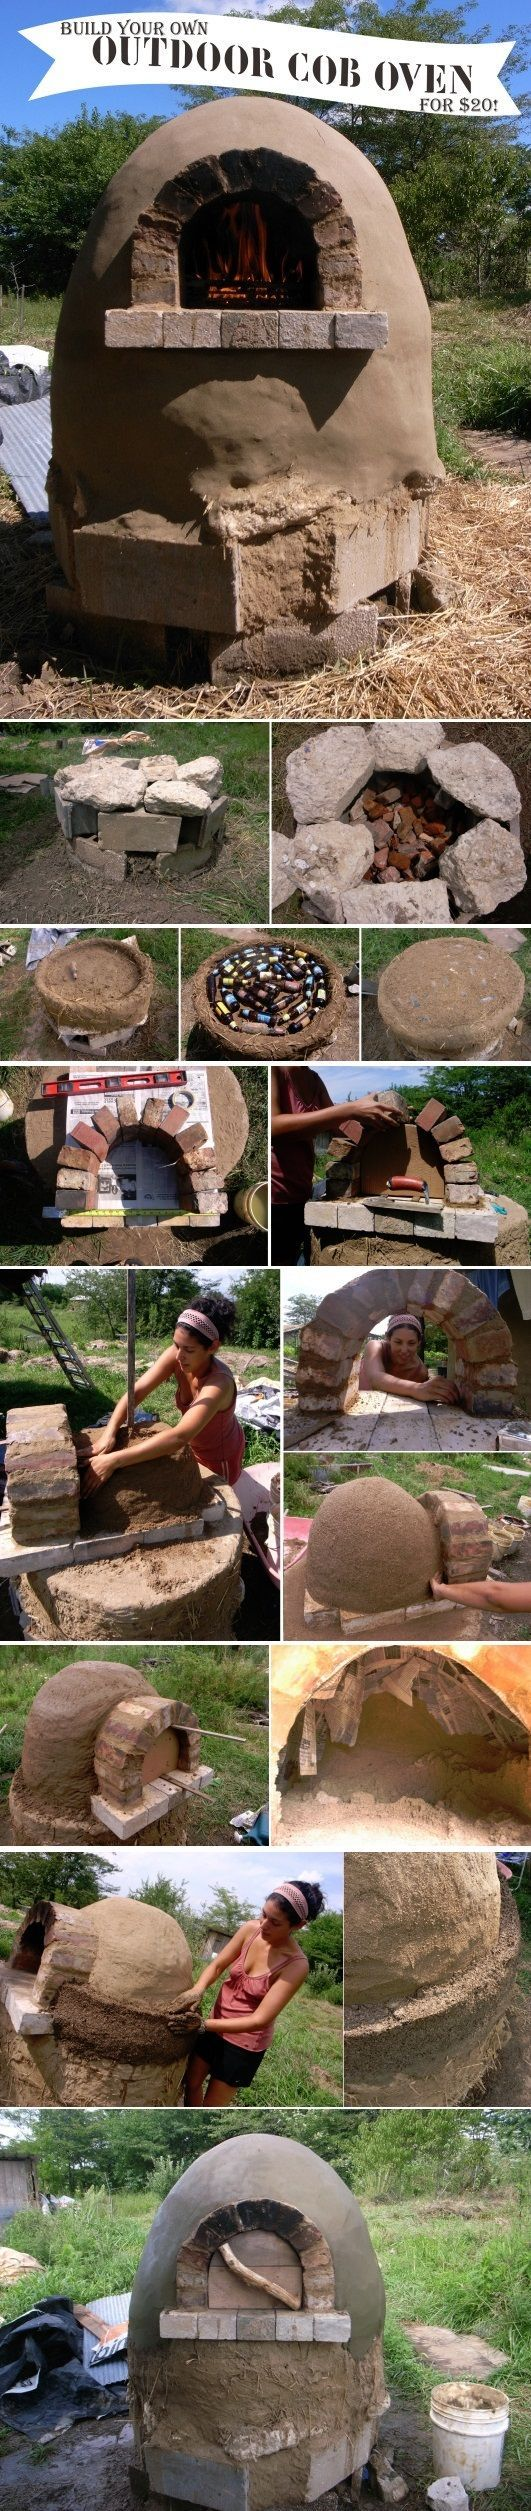 How To Build An Outdoor Cob Oven For $20 use hypertufa! There is a product for heat in the oven part!